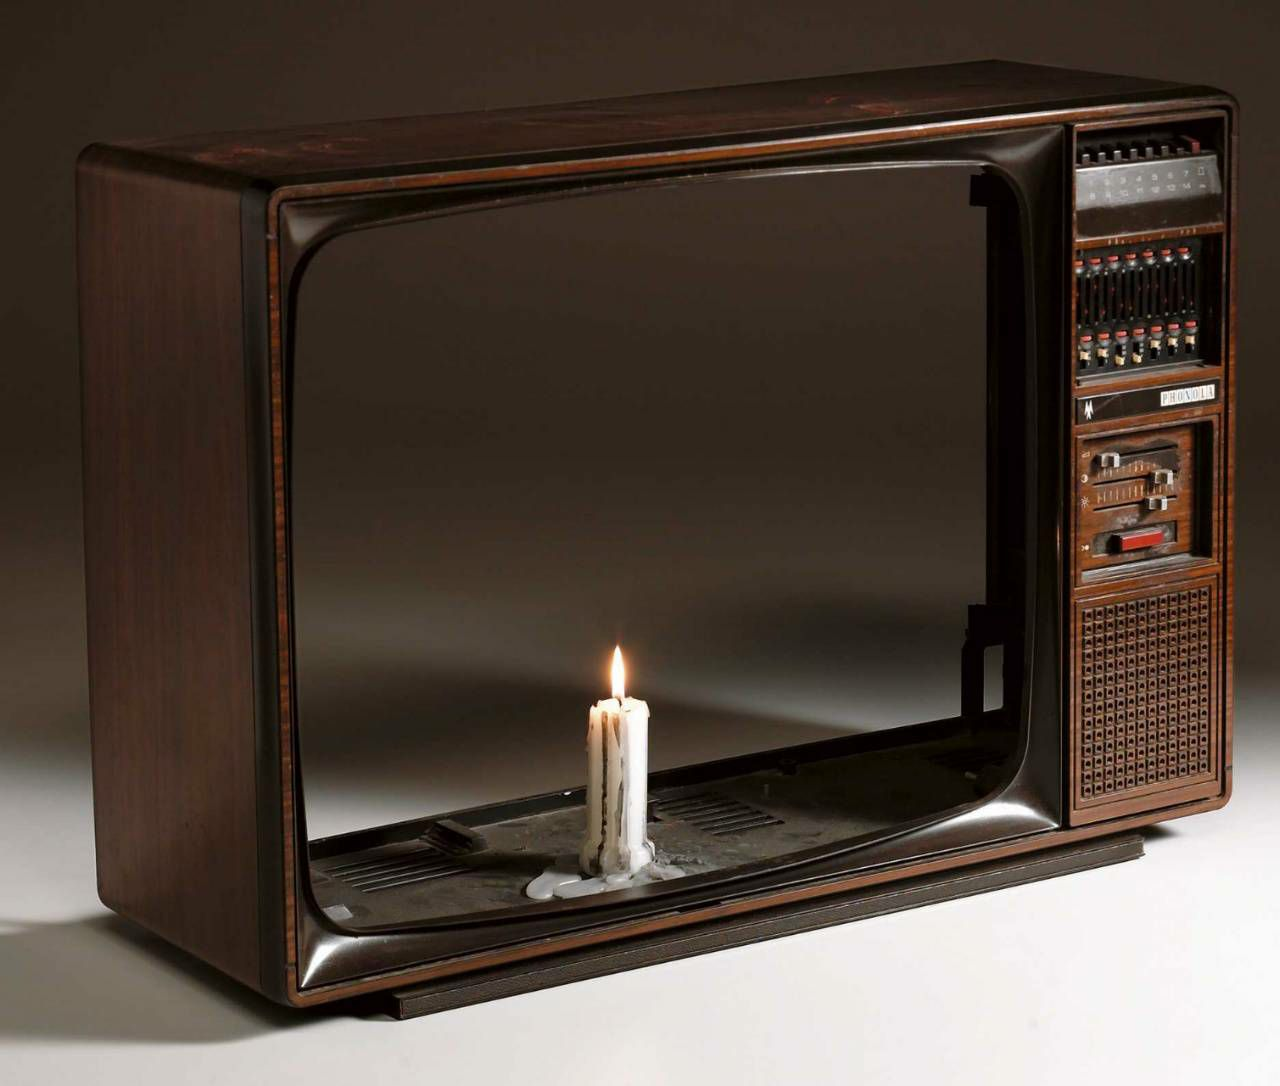 Nam June Paik Candle in TV Case (1975). © Paik, Nam June